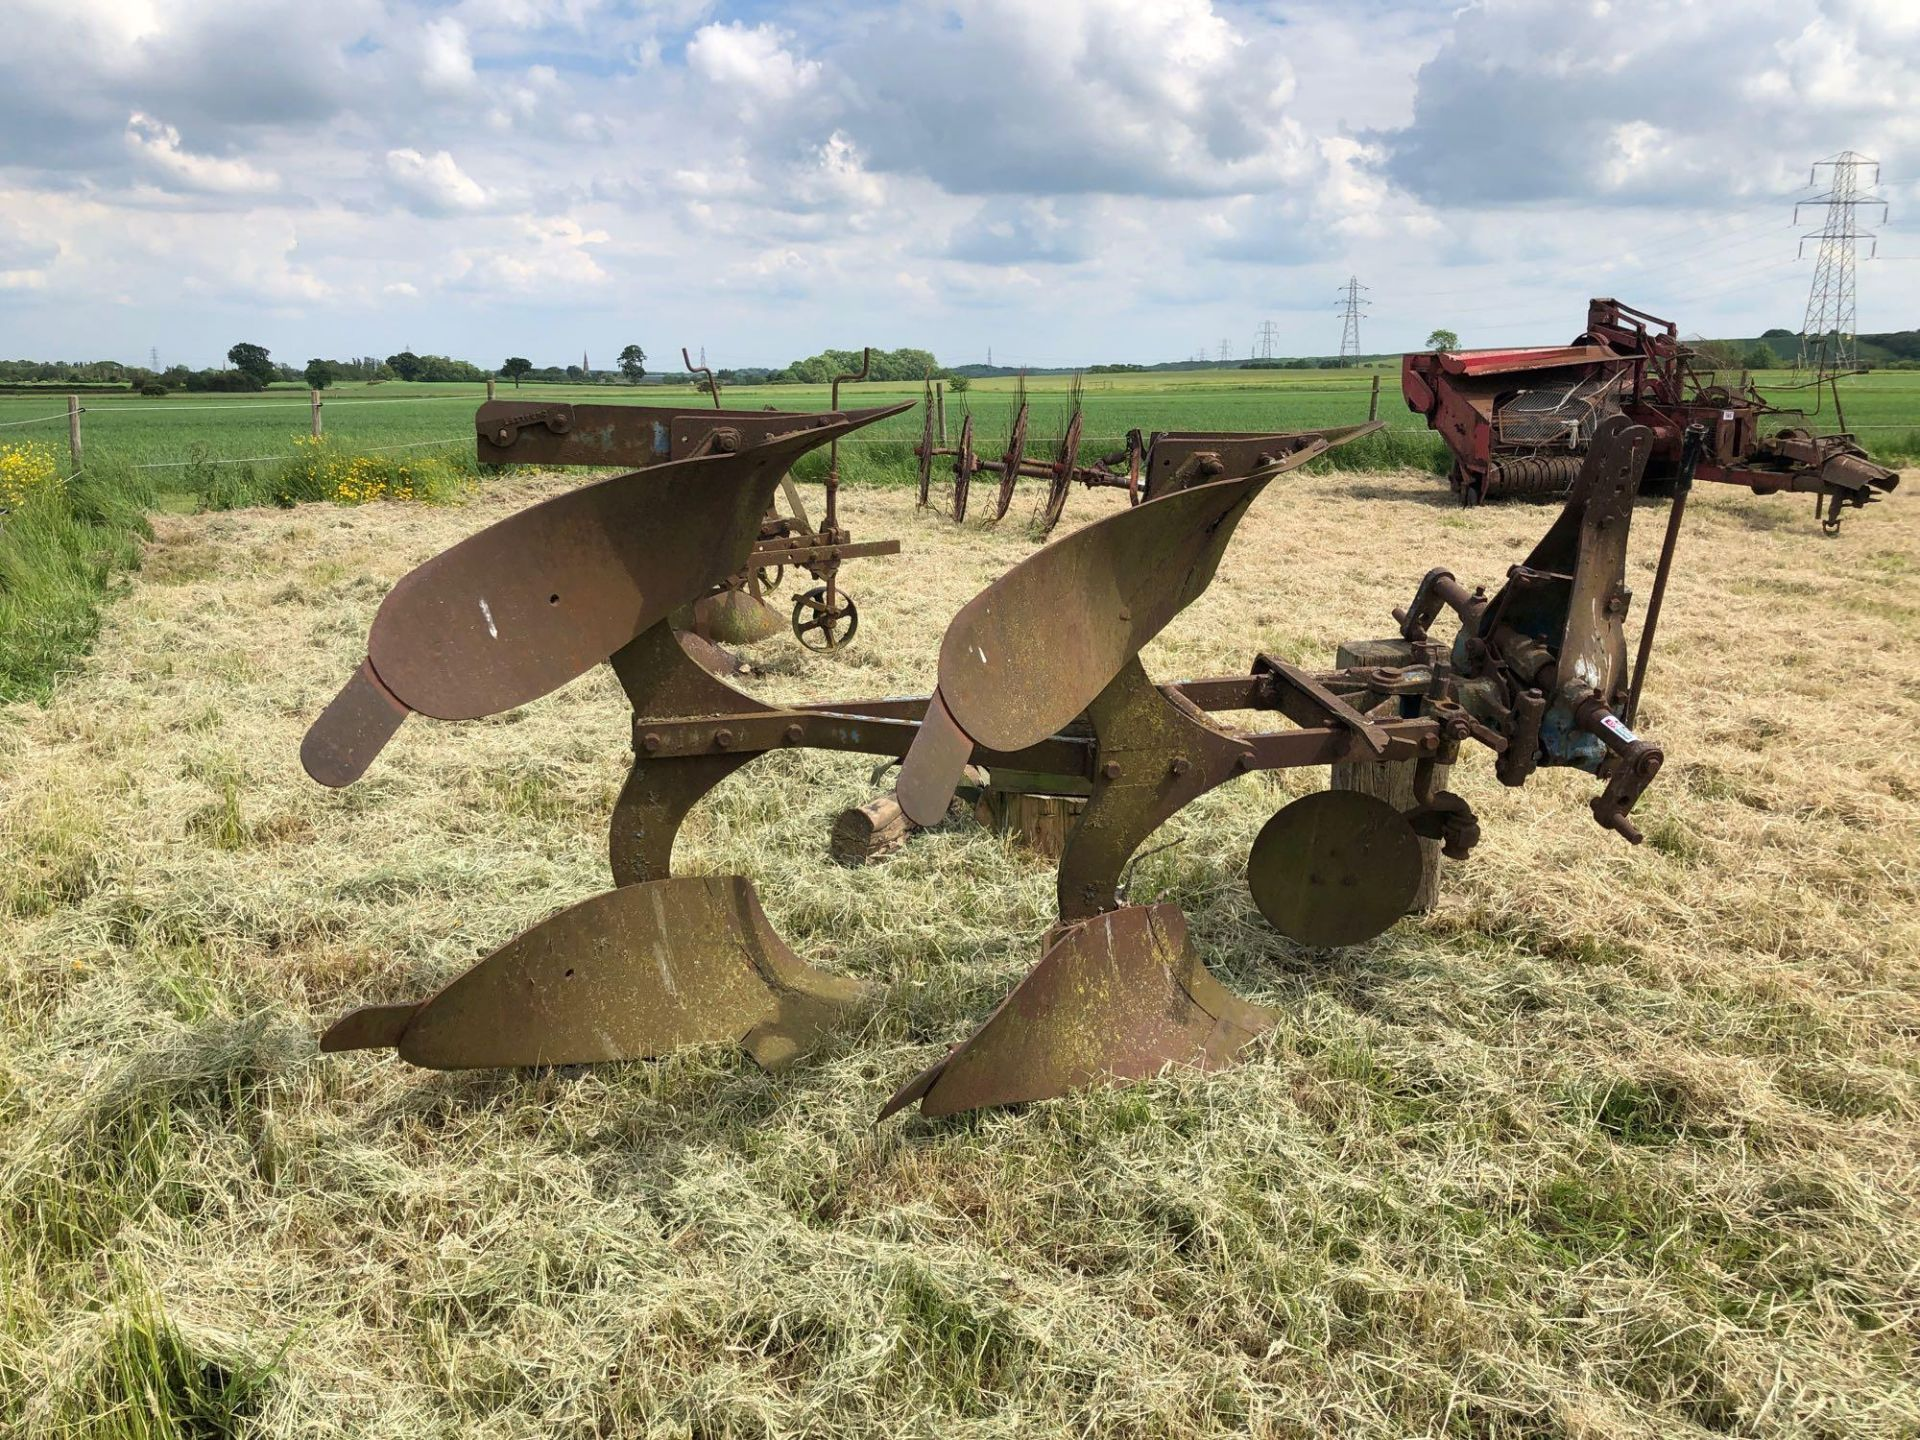 Ransomes 2f reversible plough - Image 2 of 4